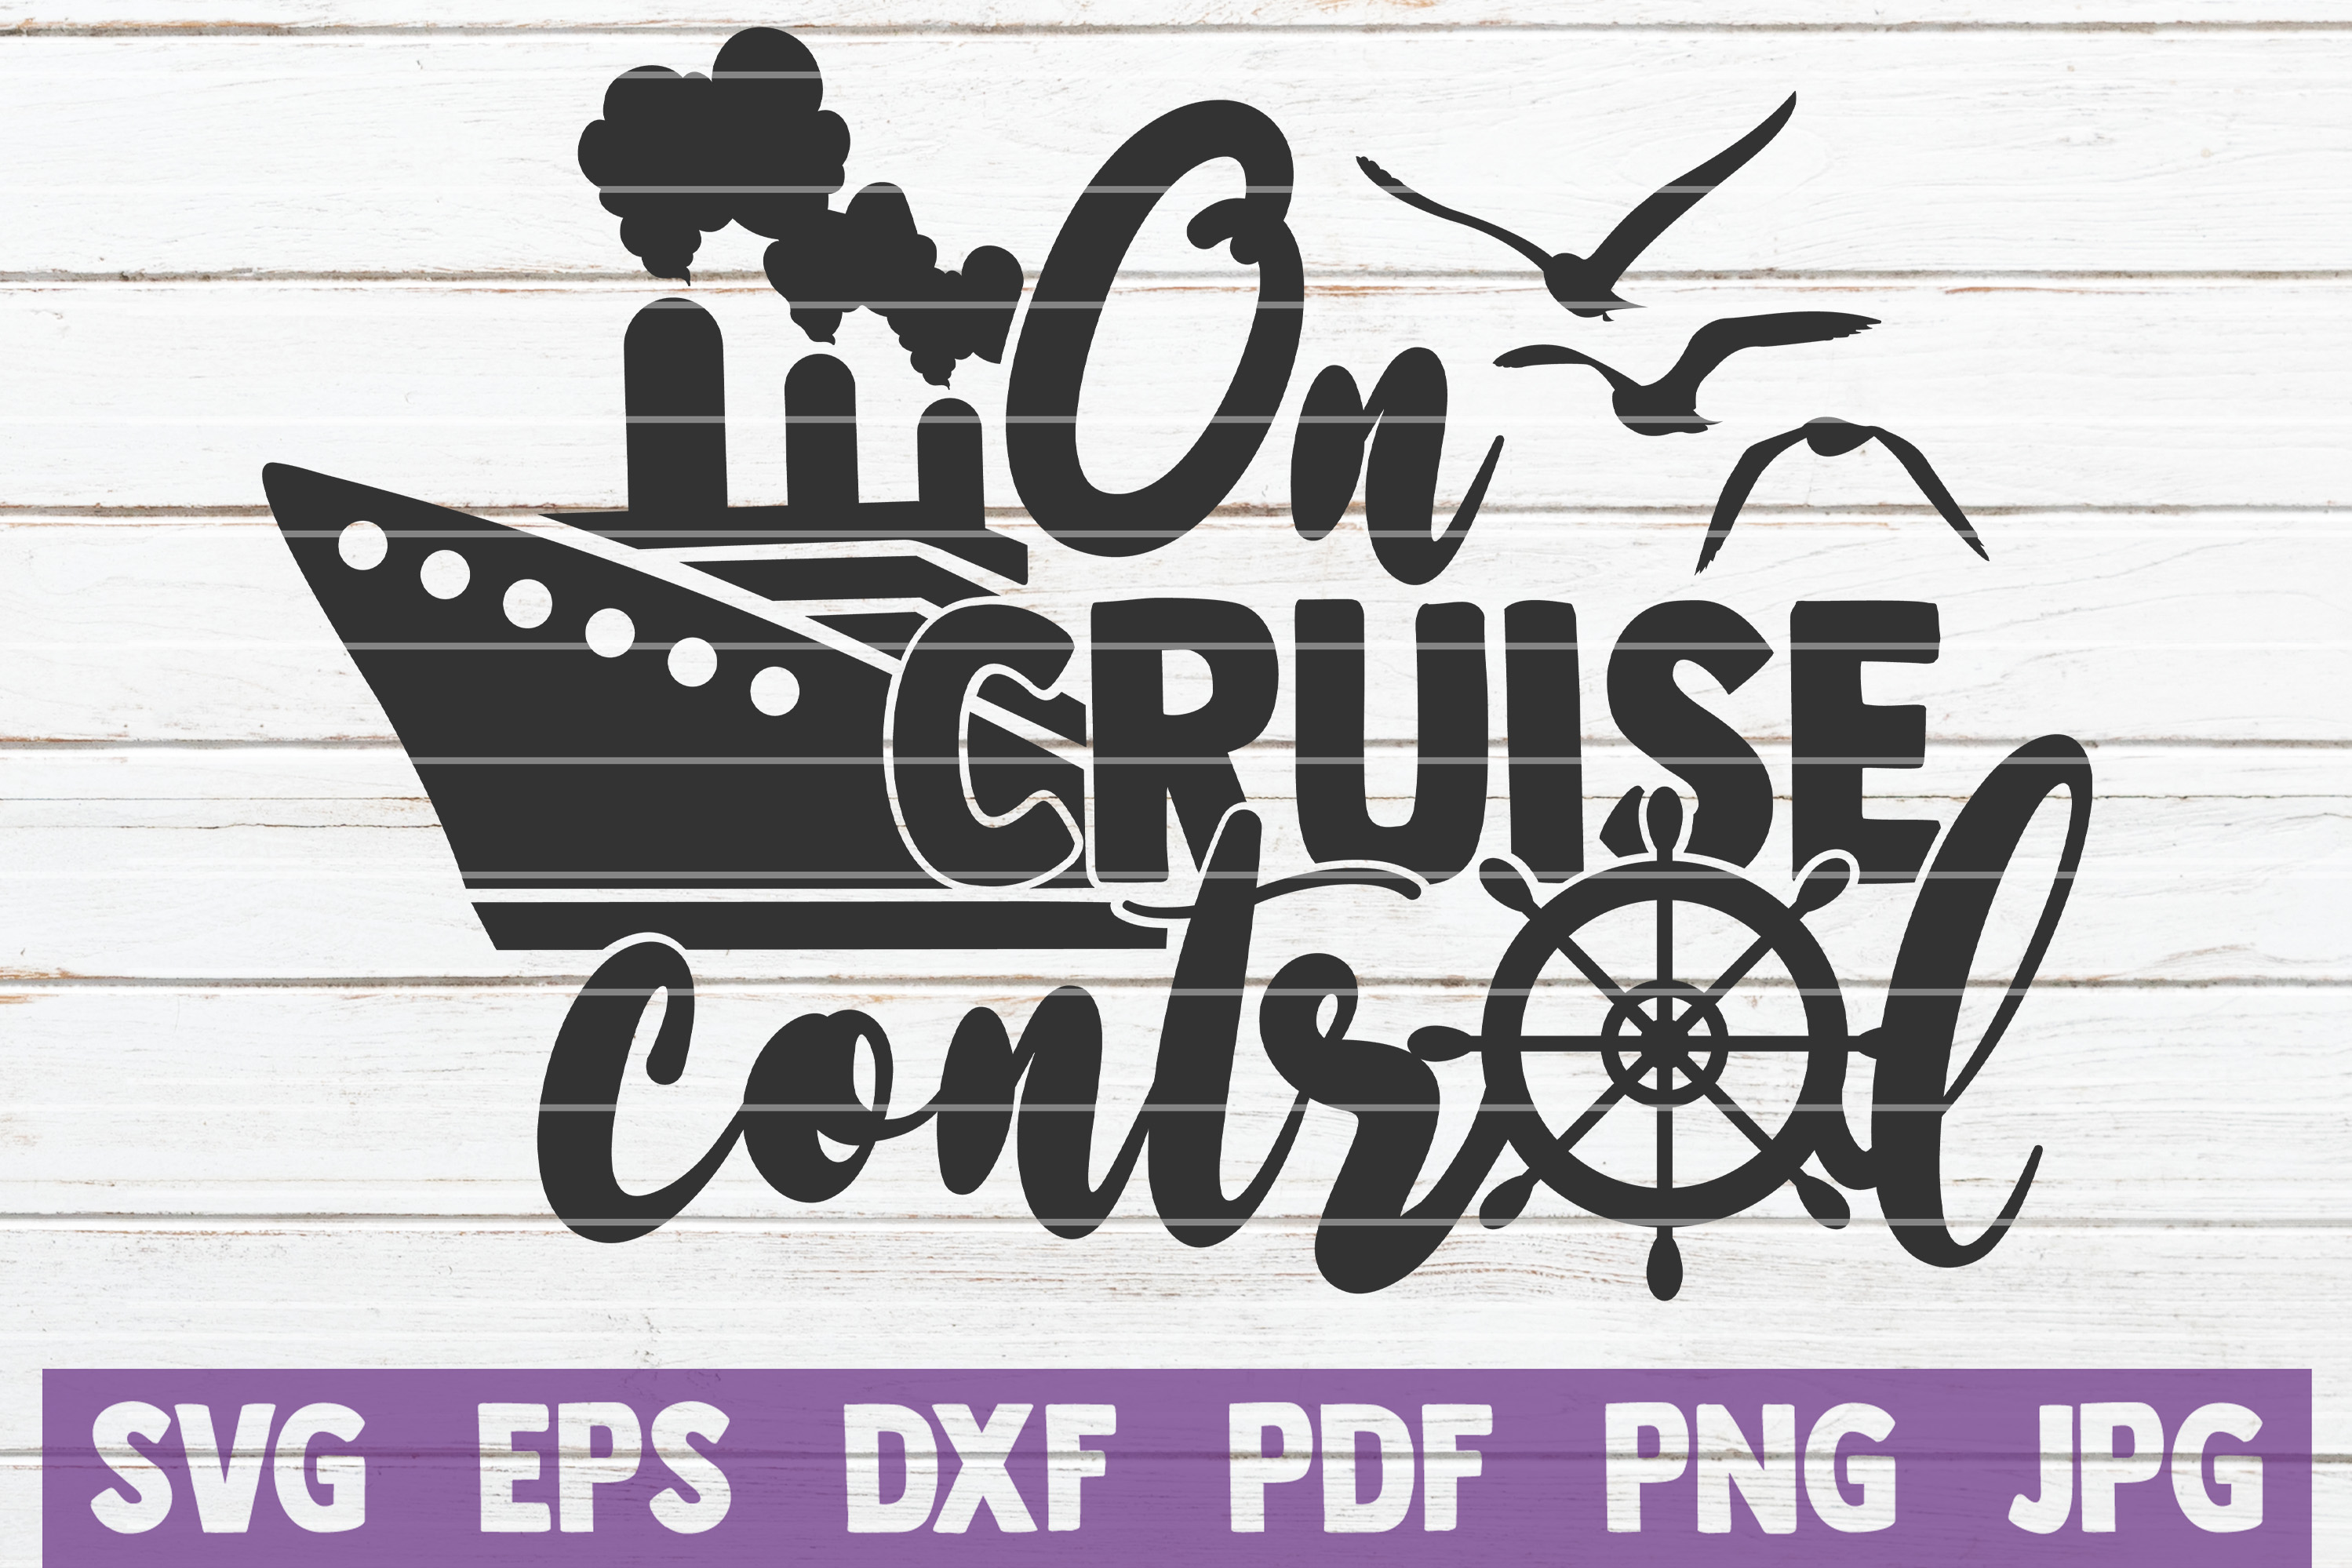 Download Free On Cruise Control Svg Cut File Graphic By Mintymarshmallows for Cricut Explore, Silhouette and other cutting machines.